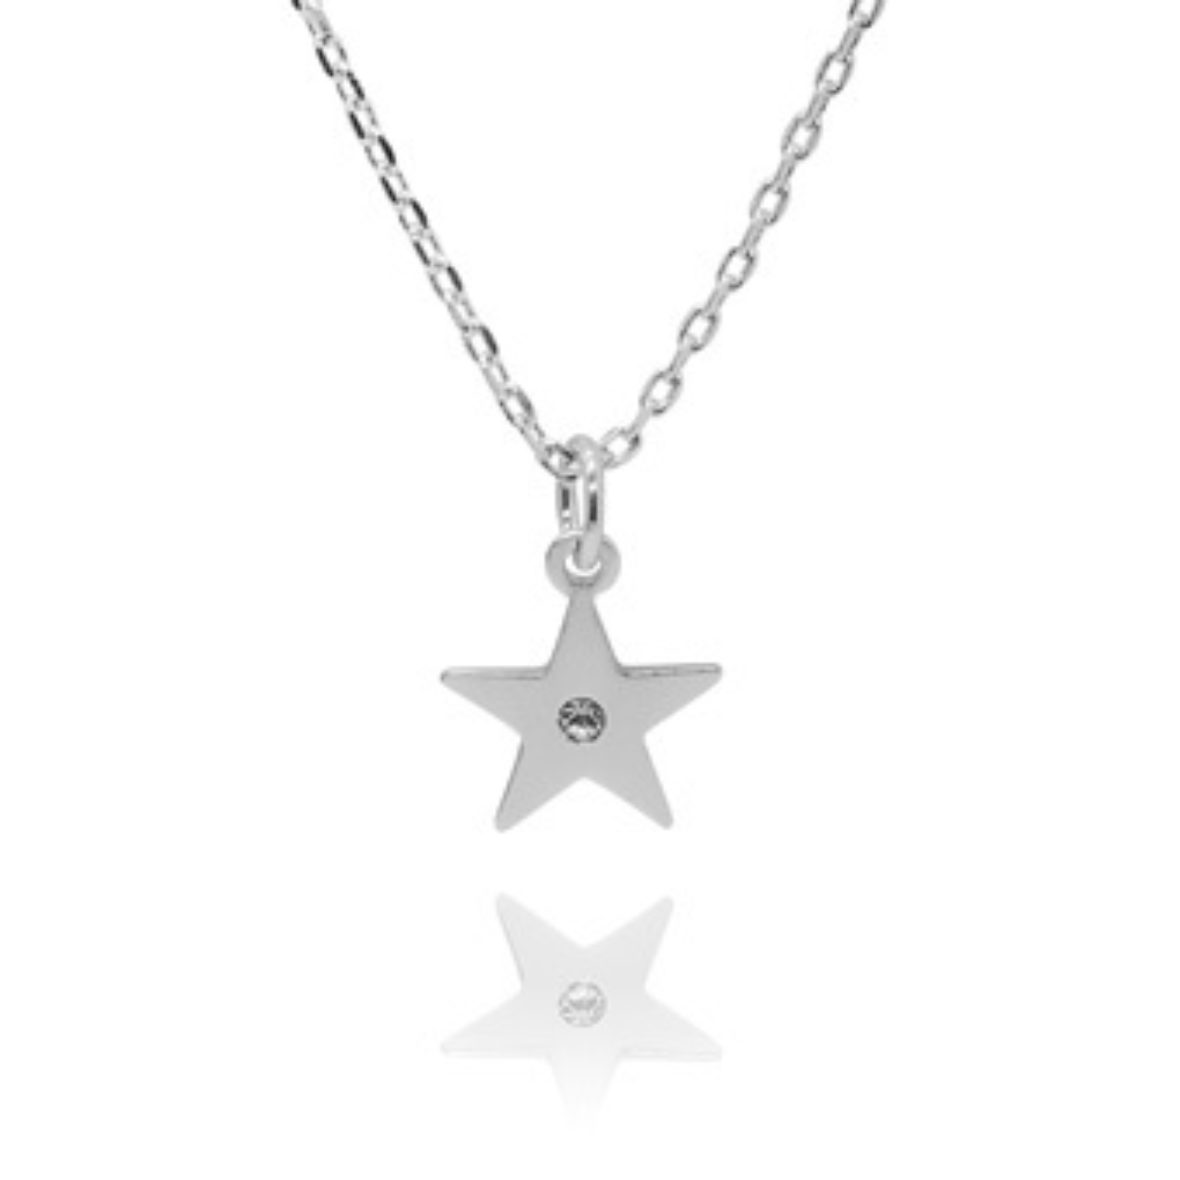 Symbolic Jewellery Meanings | Charm Meanings